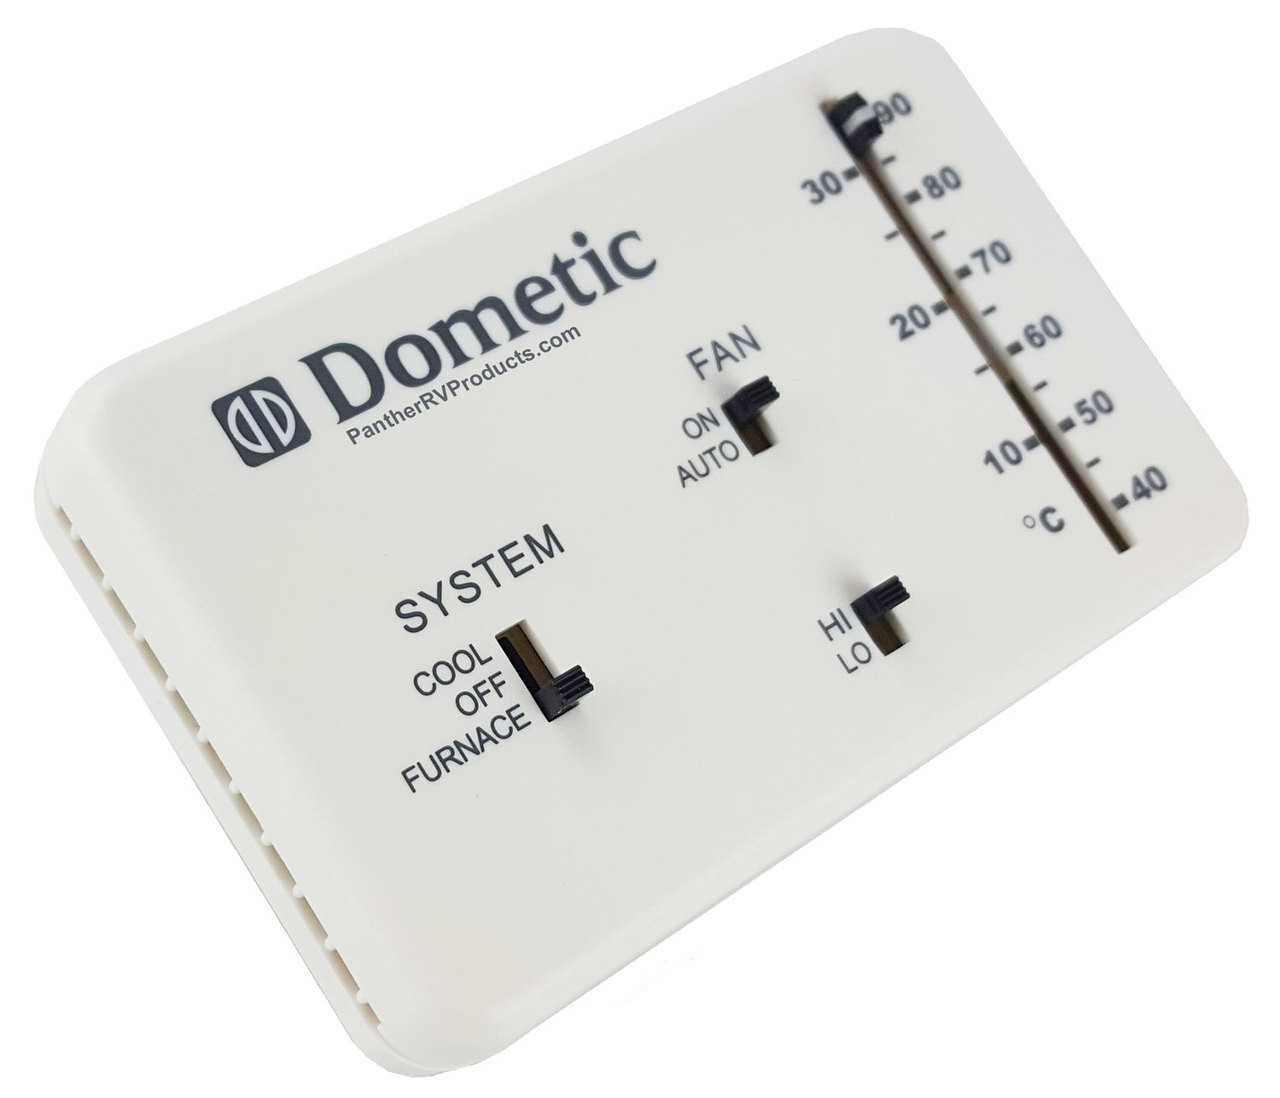 Dometic Thermostat Wiring